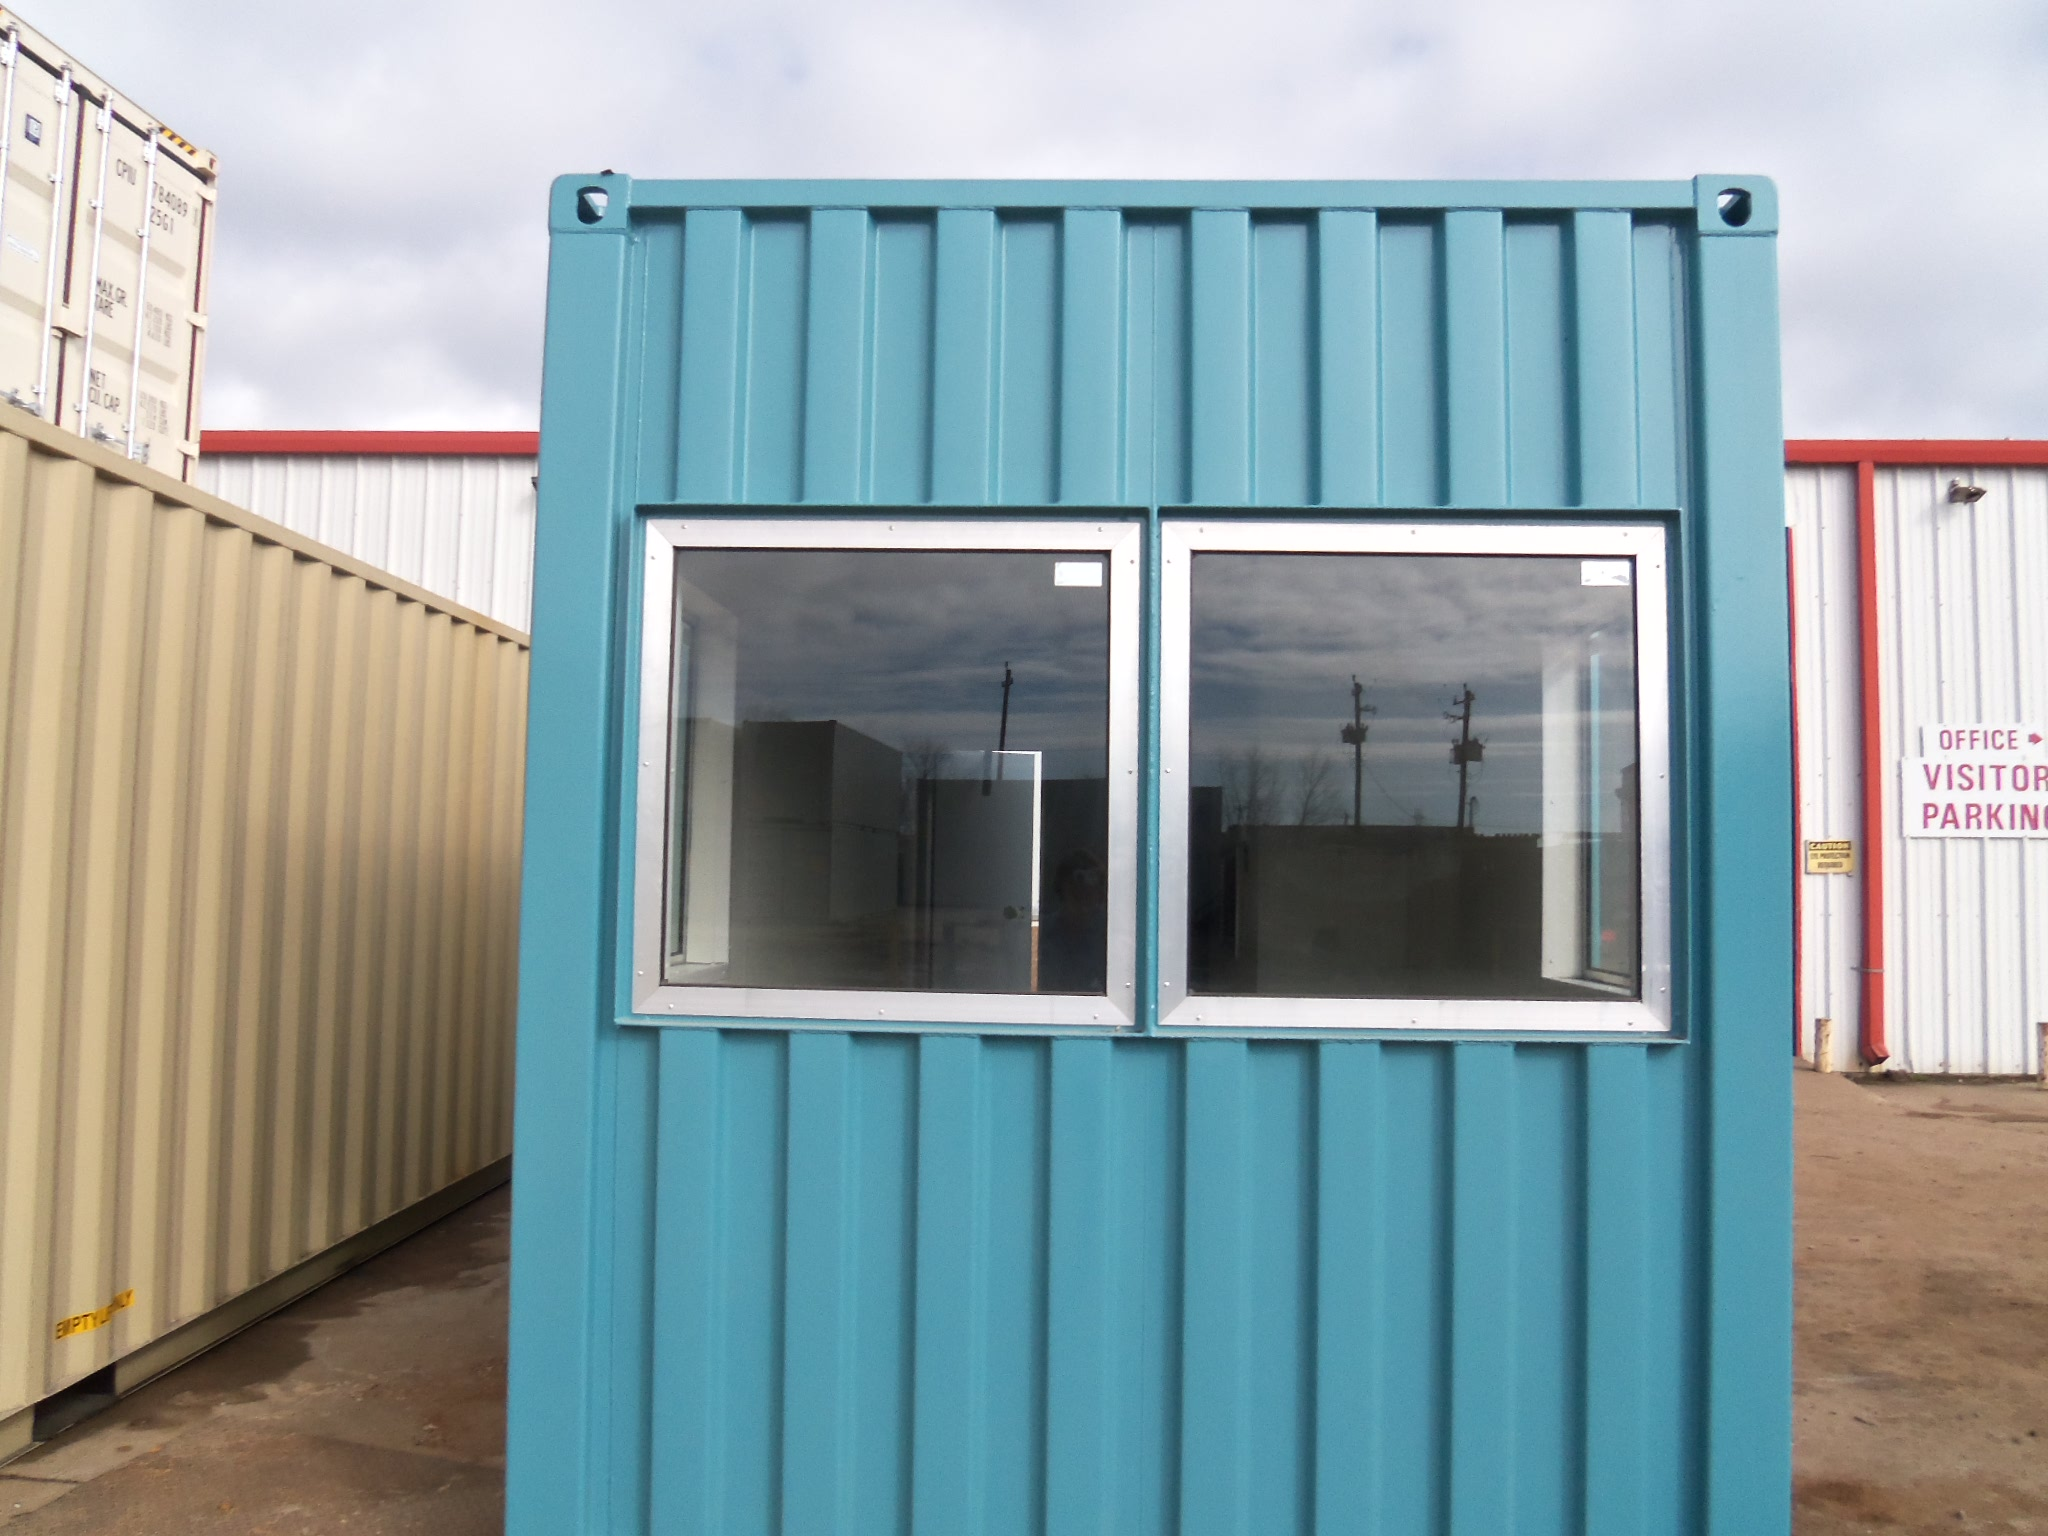 Container_blue_color_windows.jpg